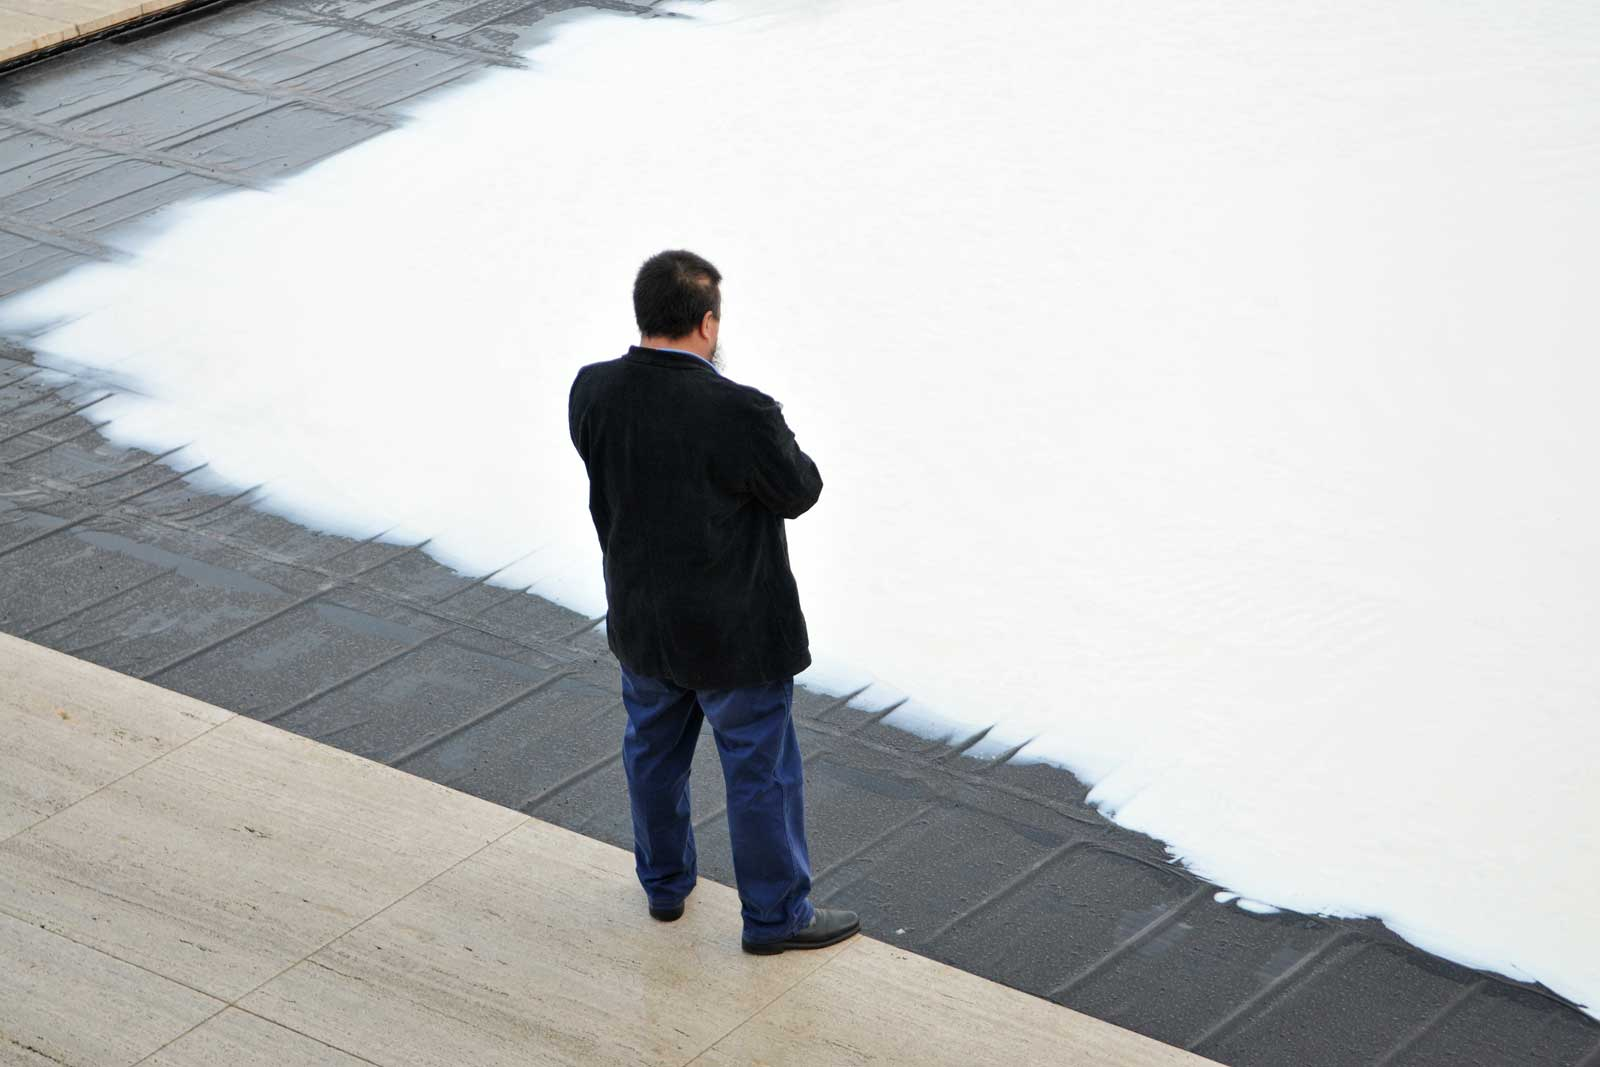 AIWEIWEI _ WITH MILK  - desembre 2009 - Pavelló Mies van der Rohe - Barcelona